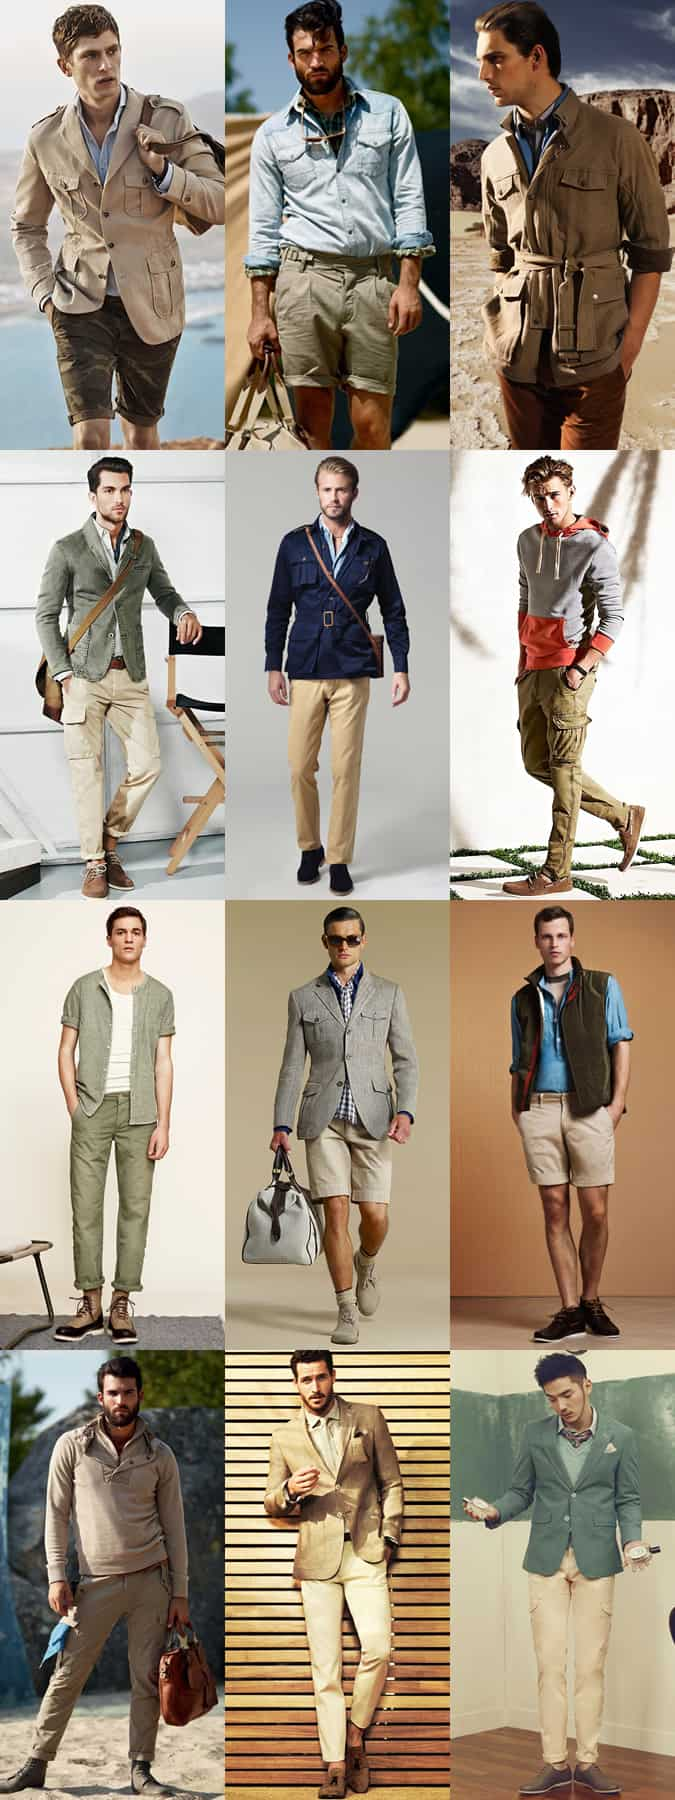 Men's Safari Inspired Shorts and Trousers - Outfit Inspiration Lookbook